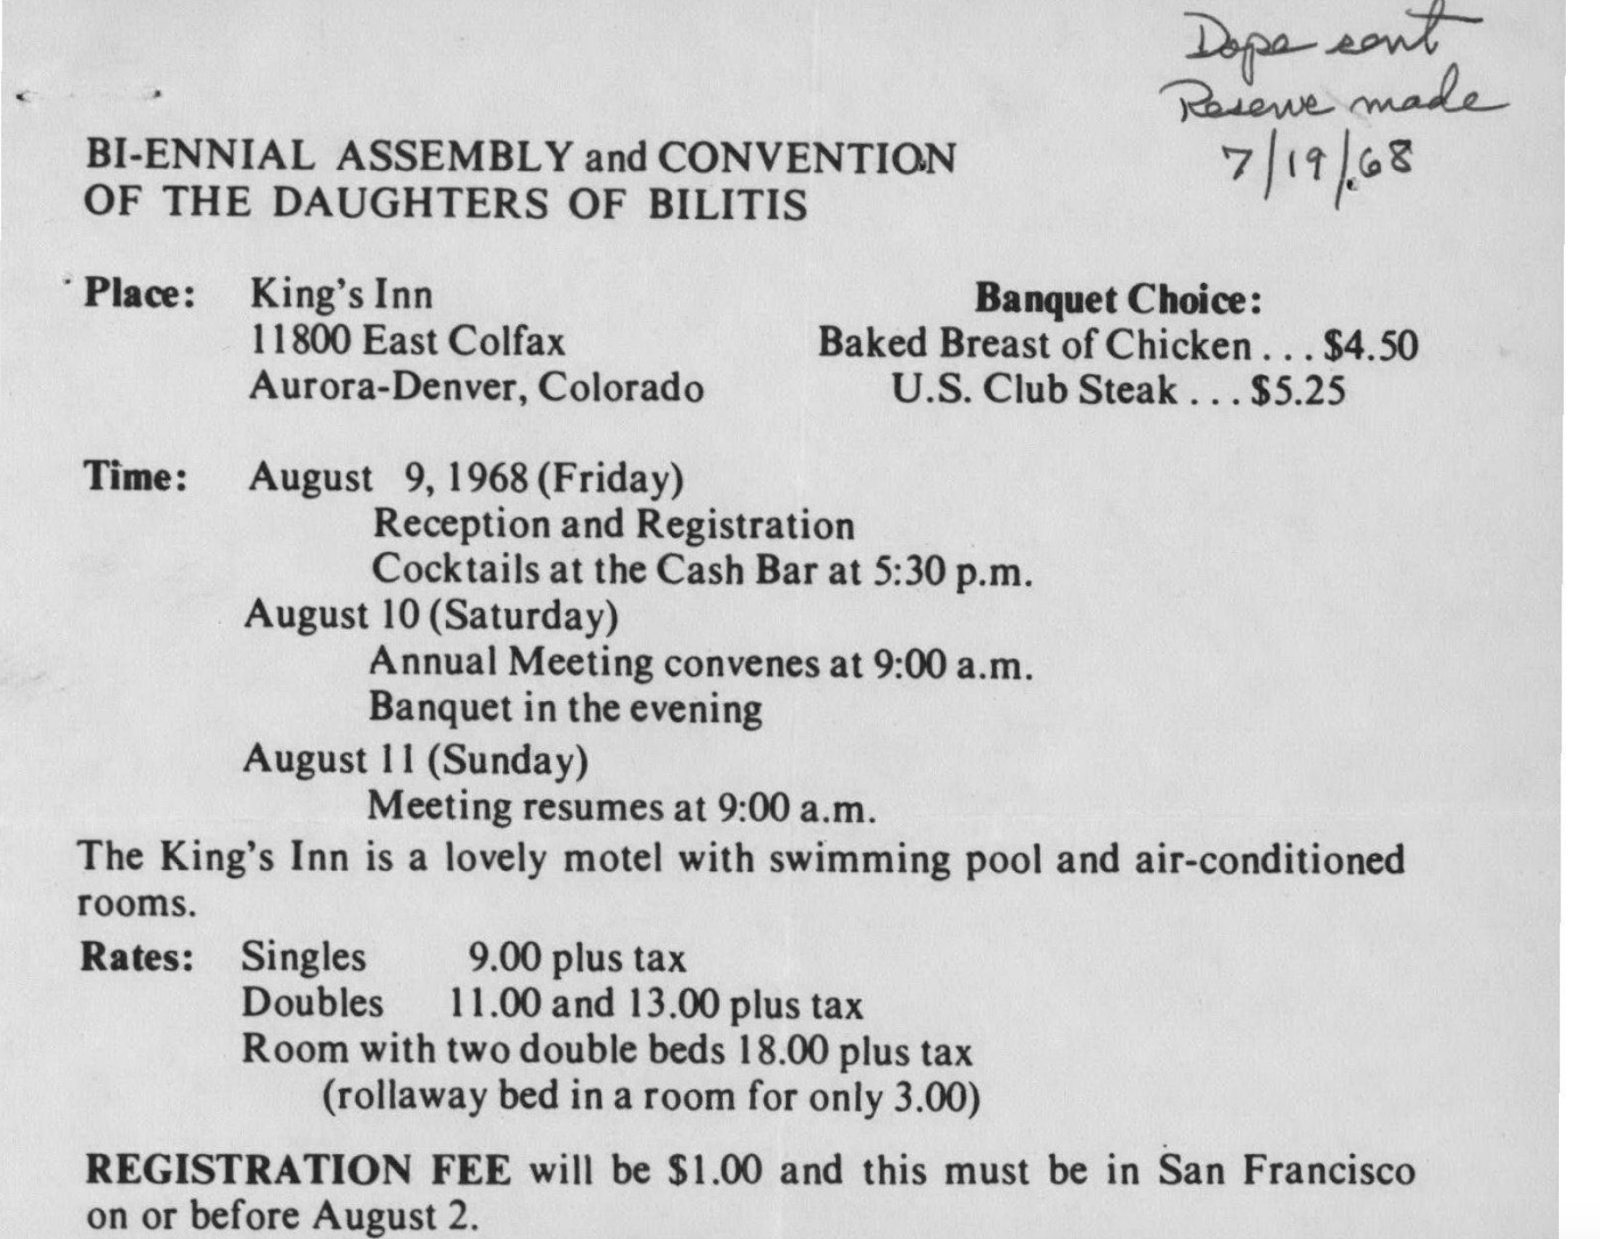 1968 Registration Form to Daughters of Bilitis National Convention, Denver, CO